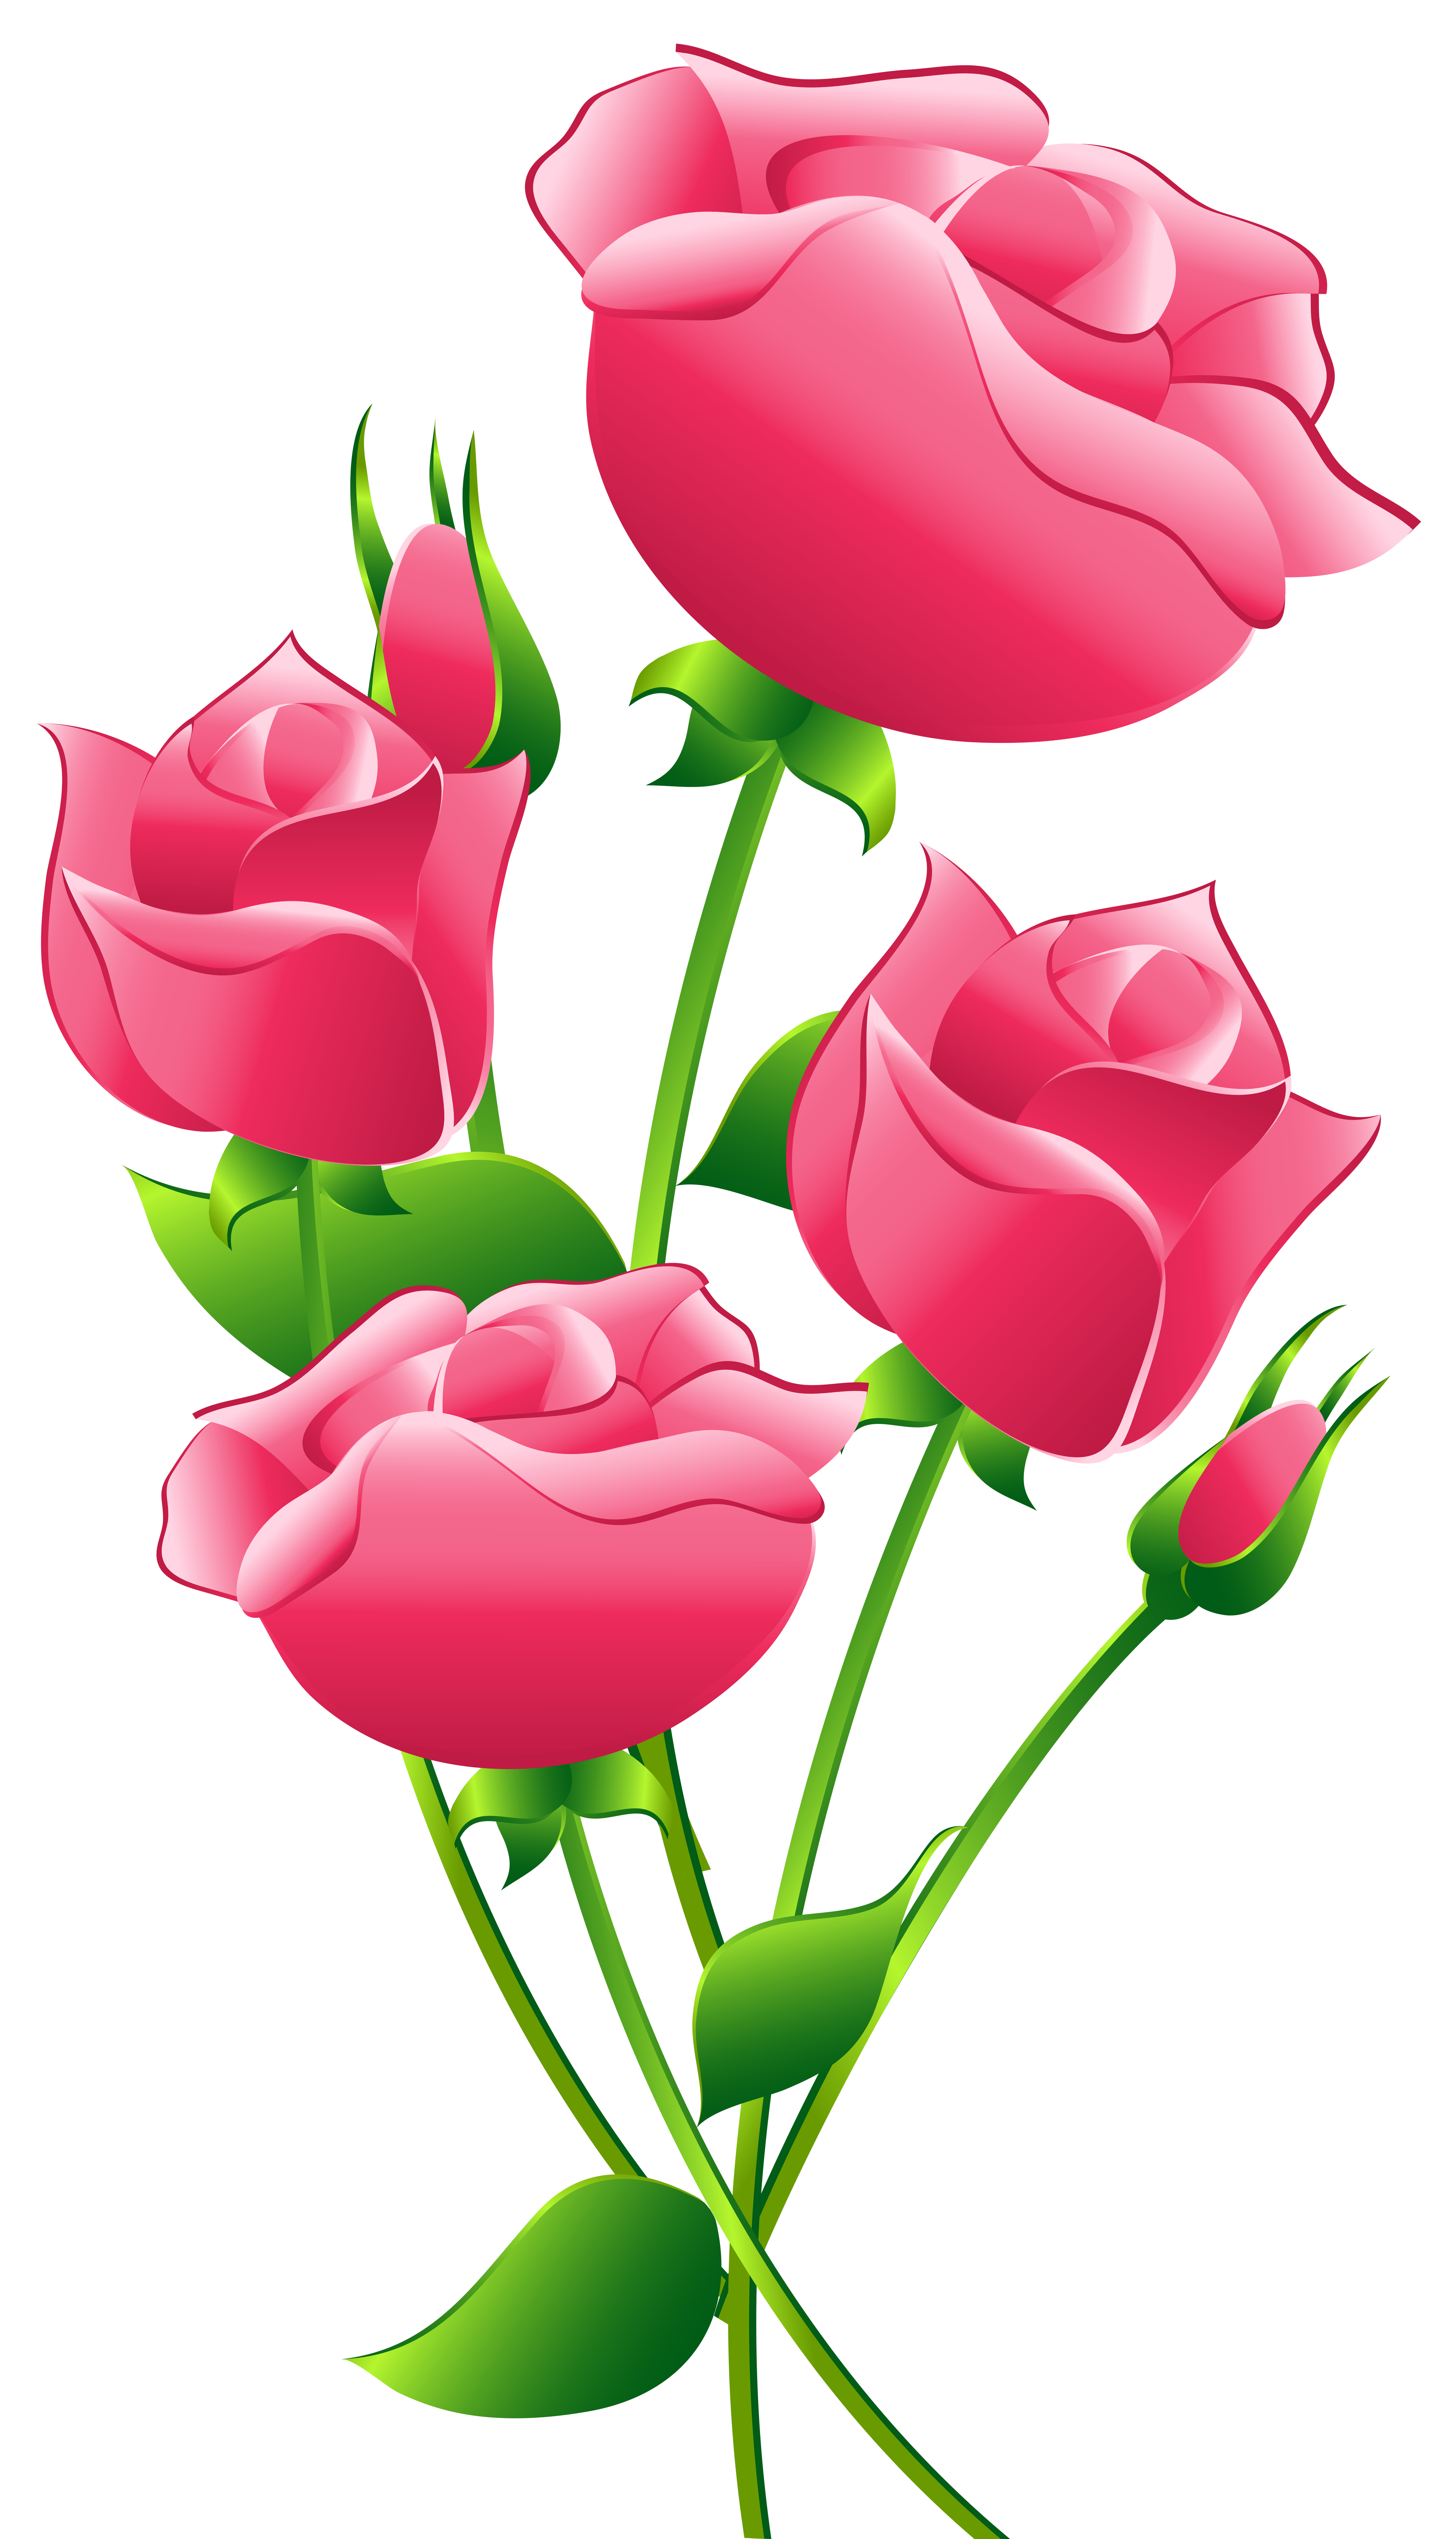 Pink roses clipart - Clipground